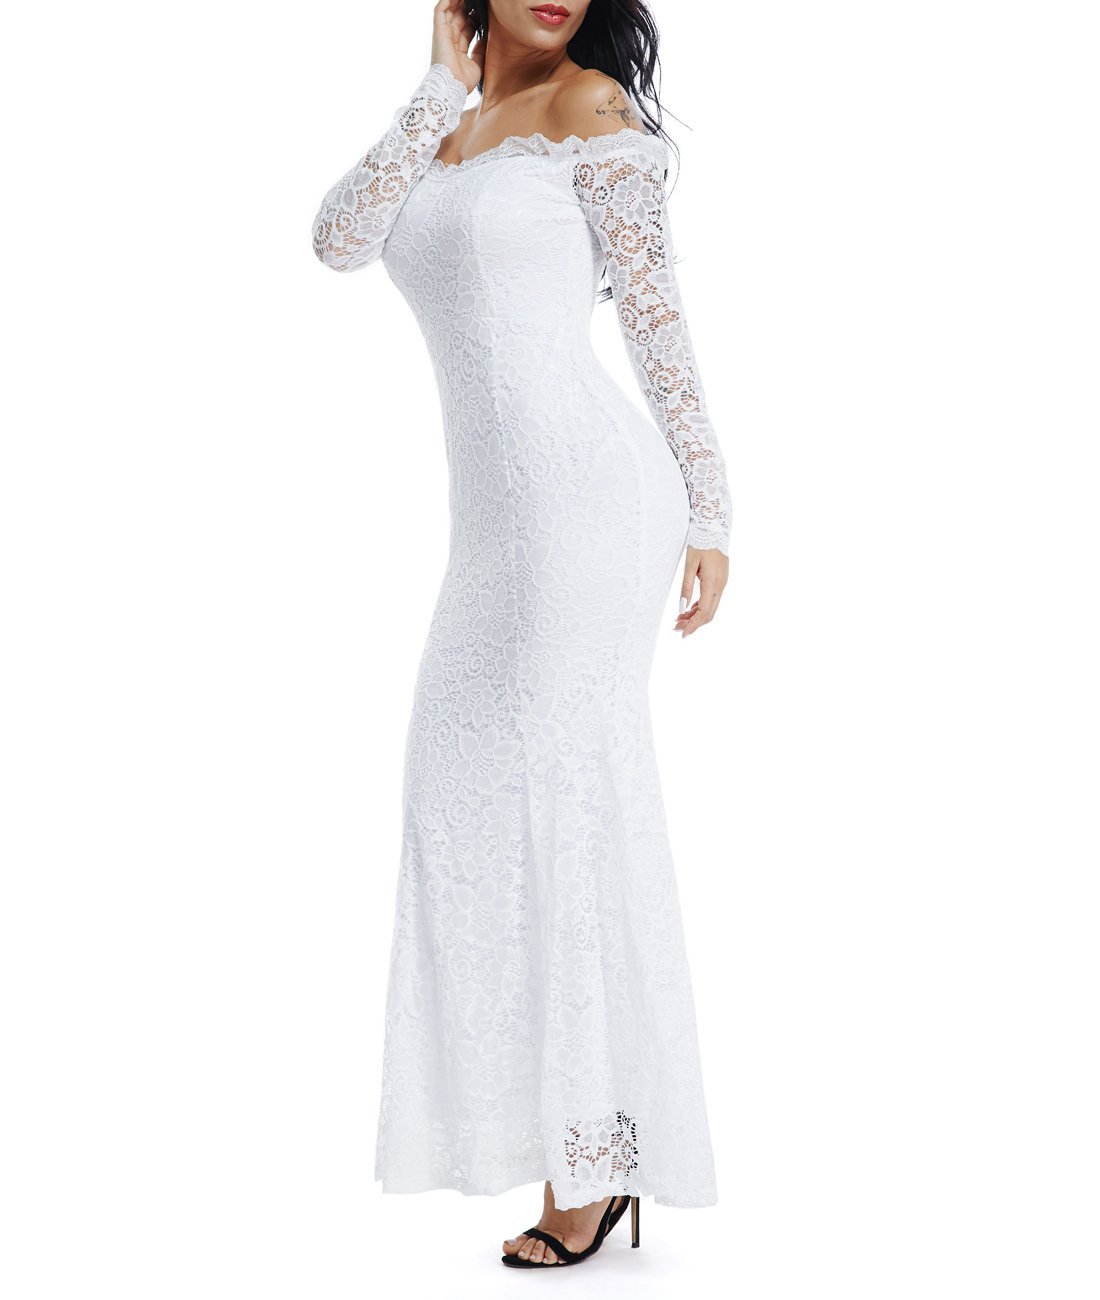 Lalagen Women's Floral Lace Long Sleeve Off Shoulder Wedding Mermaid Dress White1 S by Lalagen (Image #2)